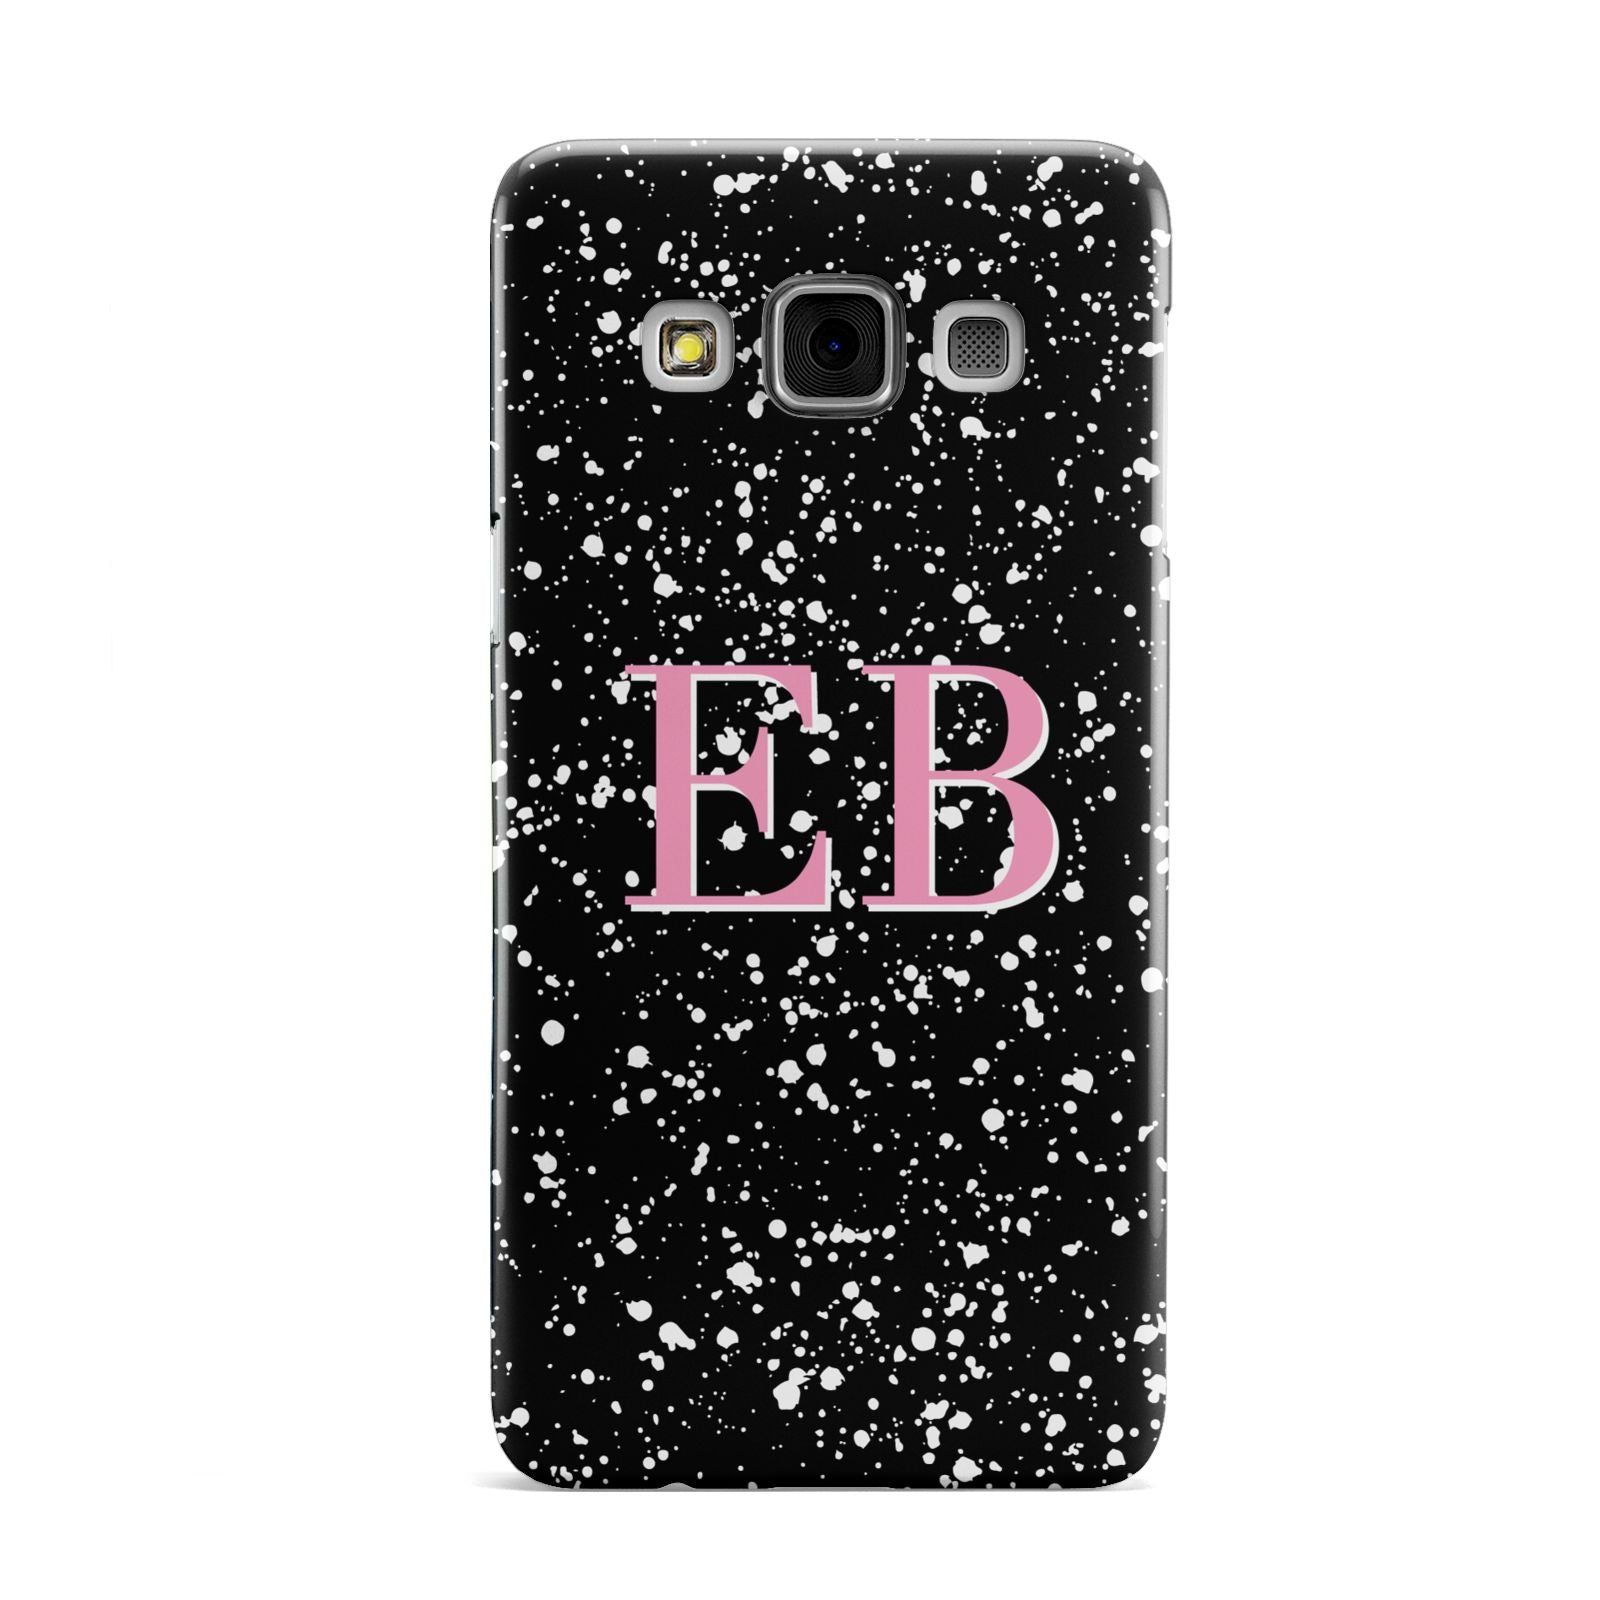 Personalised Black Ink Splat Initials Samsung Galaxy A3 Case